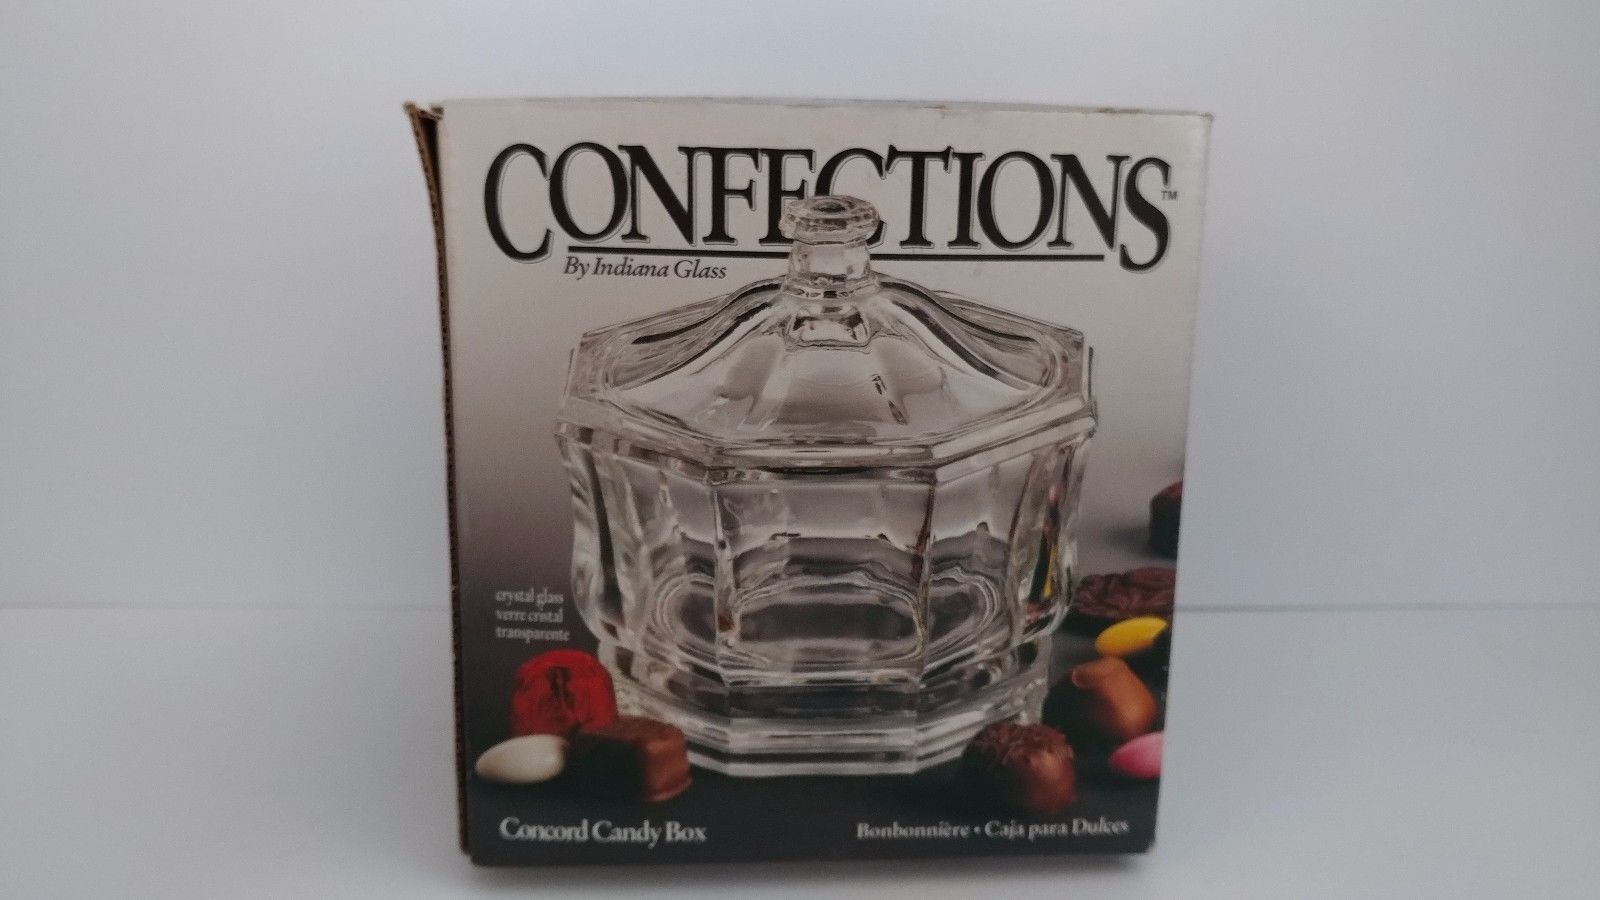 Confections Indiana Glass Concord Crystal Glass Candy Box with Lid New in Box